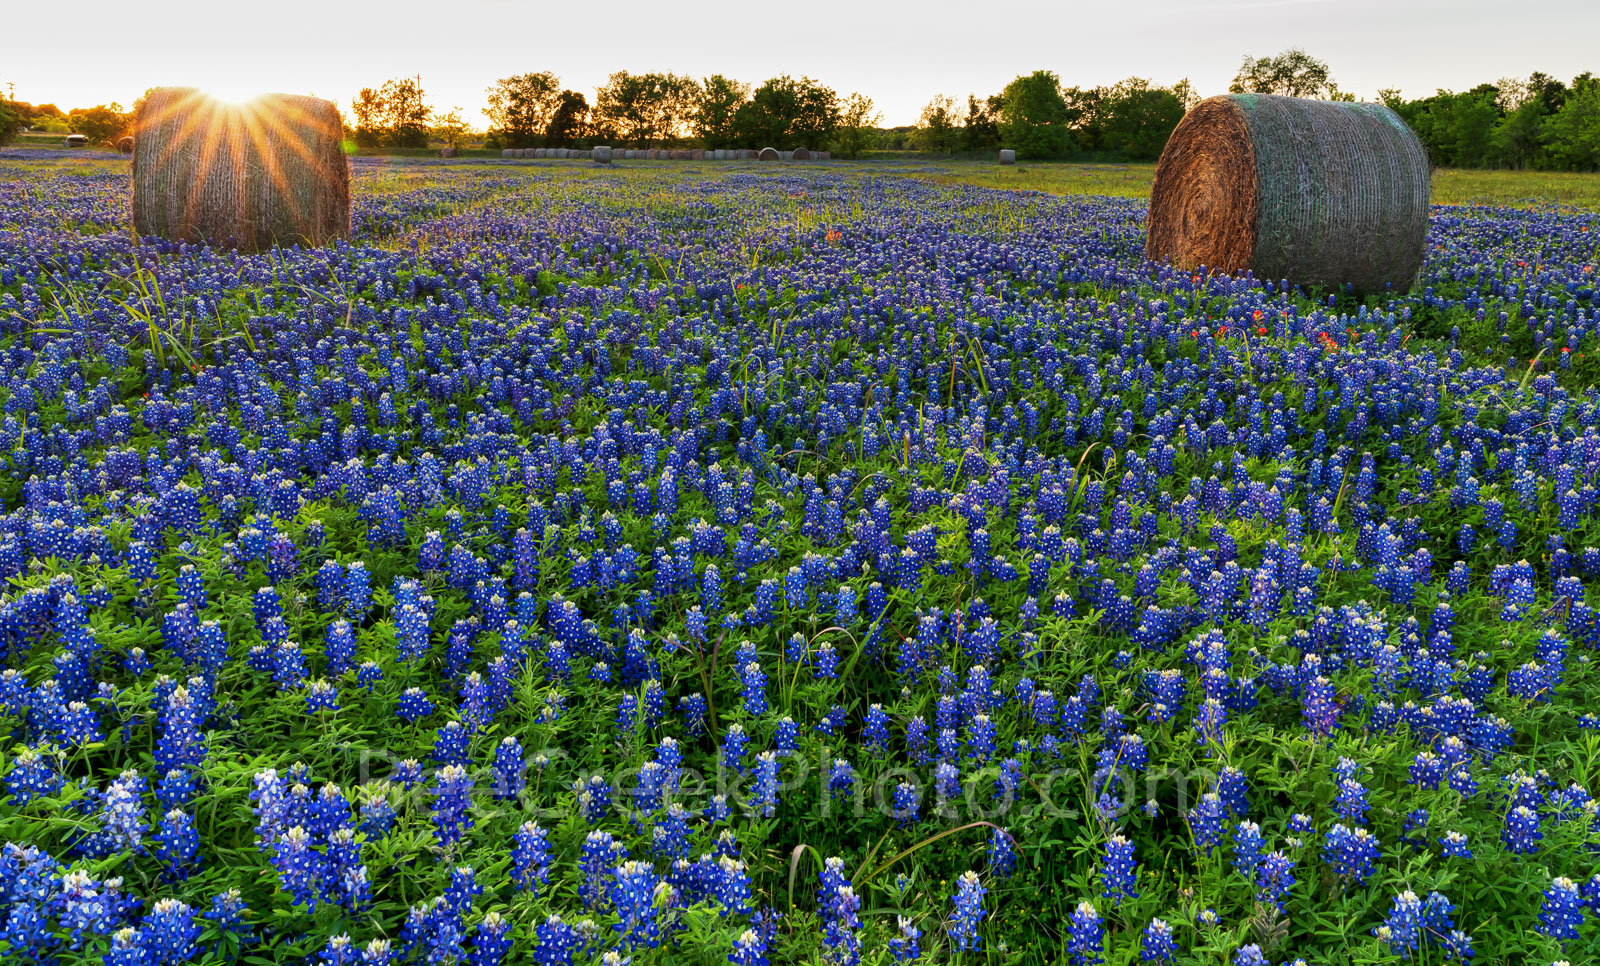 Texas bluebonnets, sunset, trees, rays, hay bales, indian paintbrush, rural texas, field of haybales, wildflowers, farm,, photo